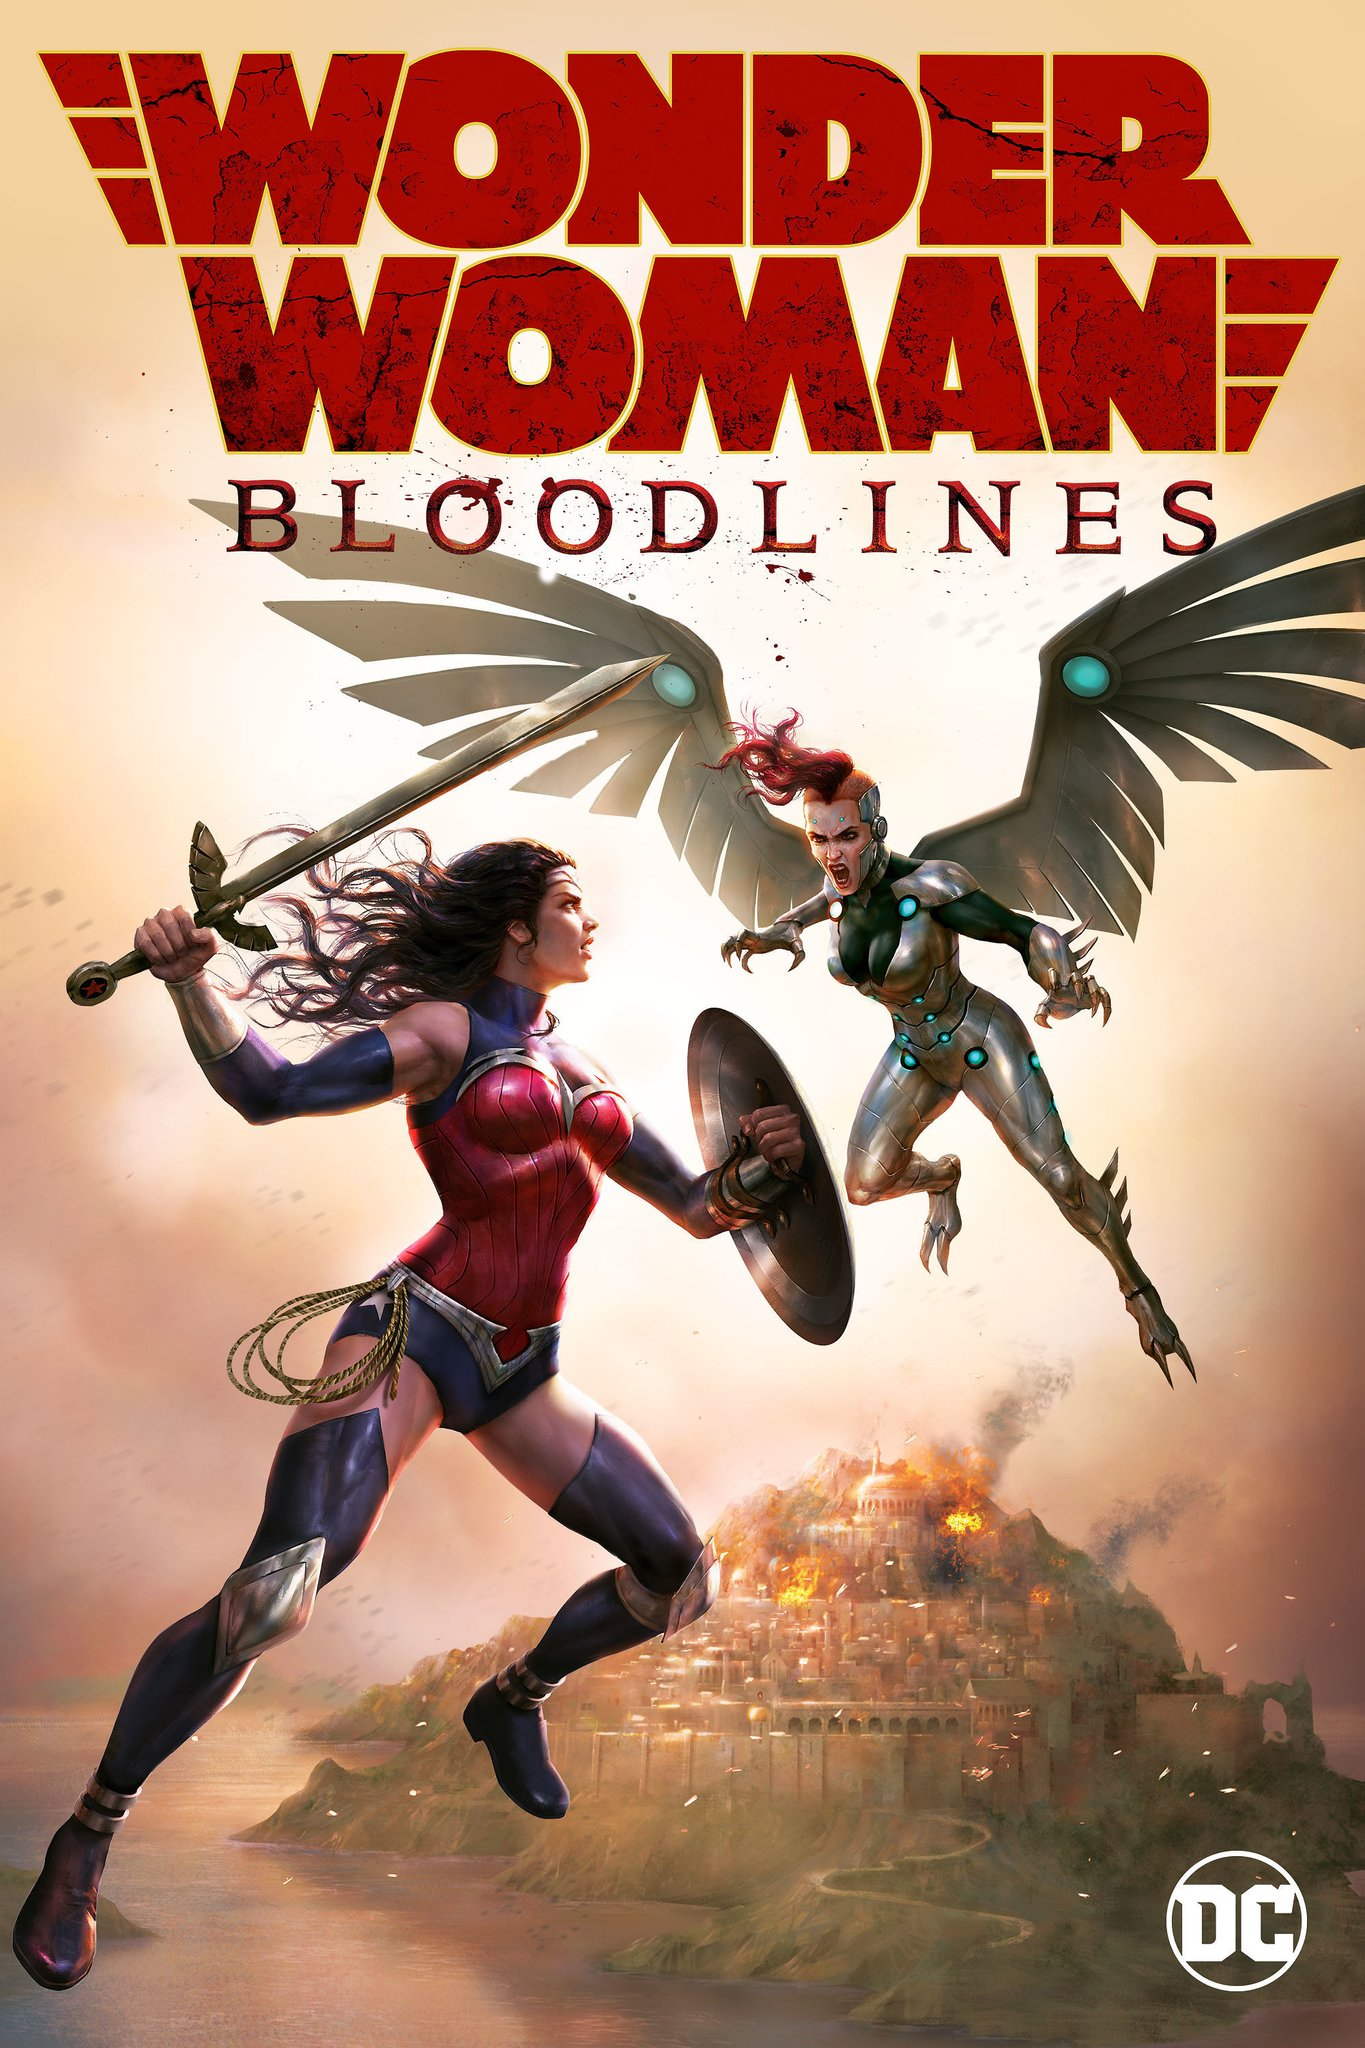 Image result for Wonder Woman Bloodlines